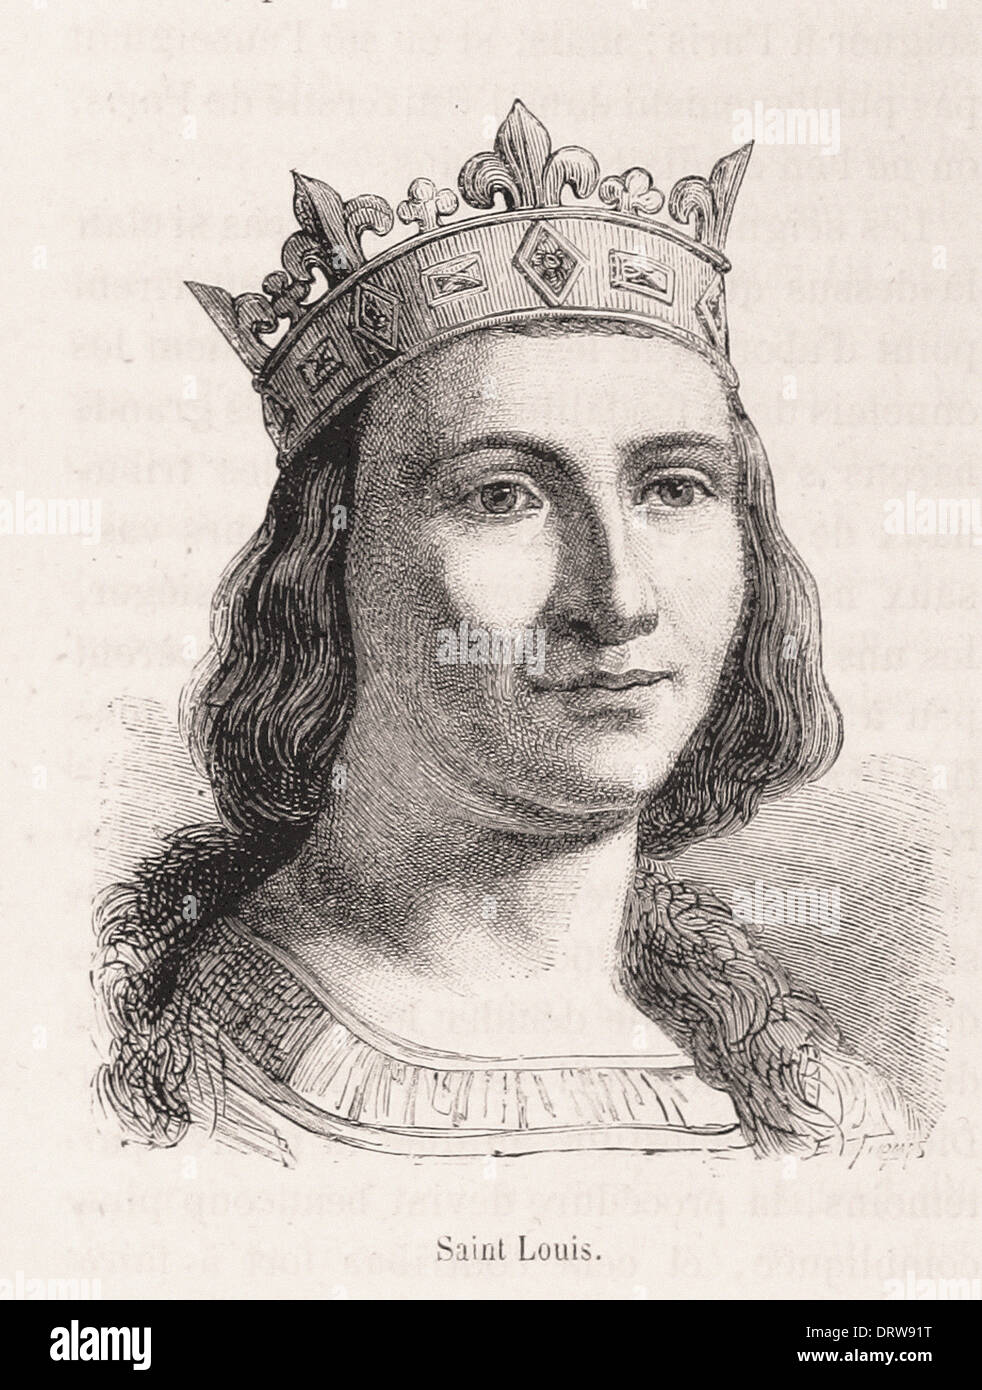 Portrait of Saint Louis king of france - French engraving XIX th century - Stock Image